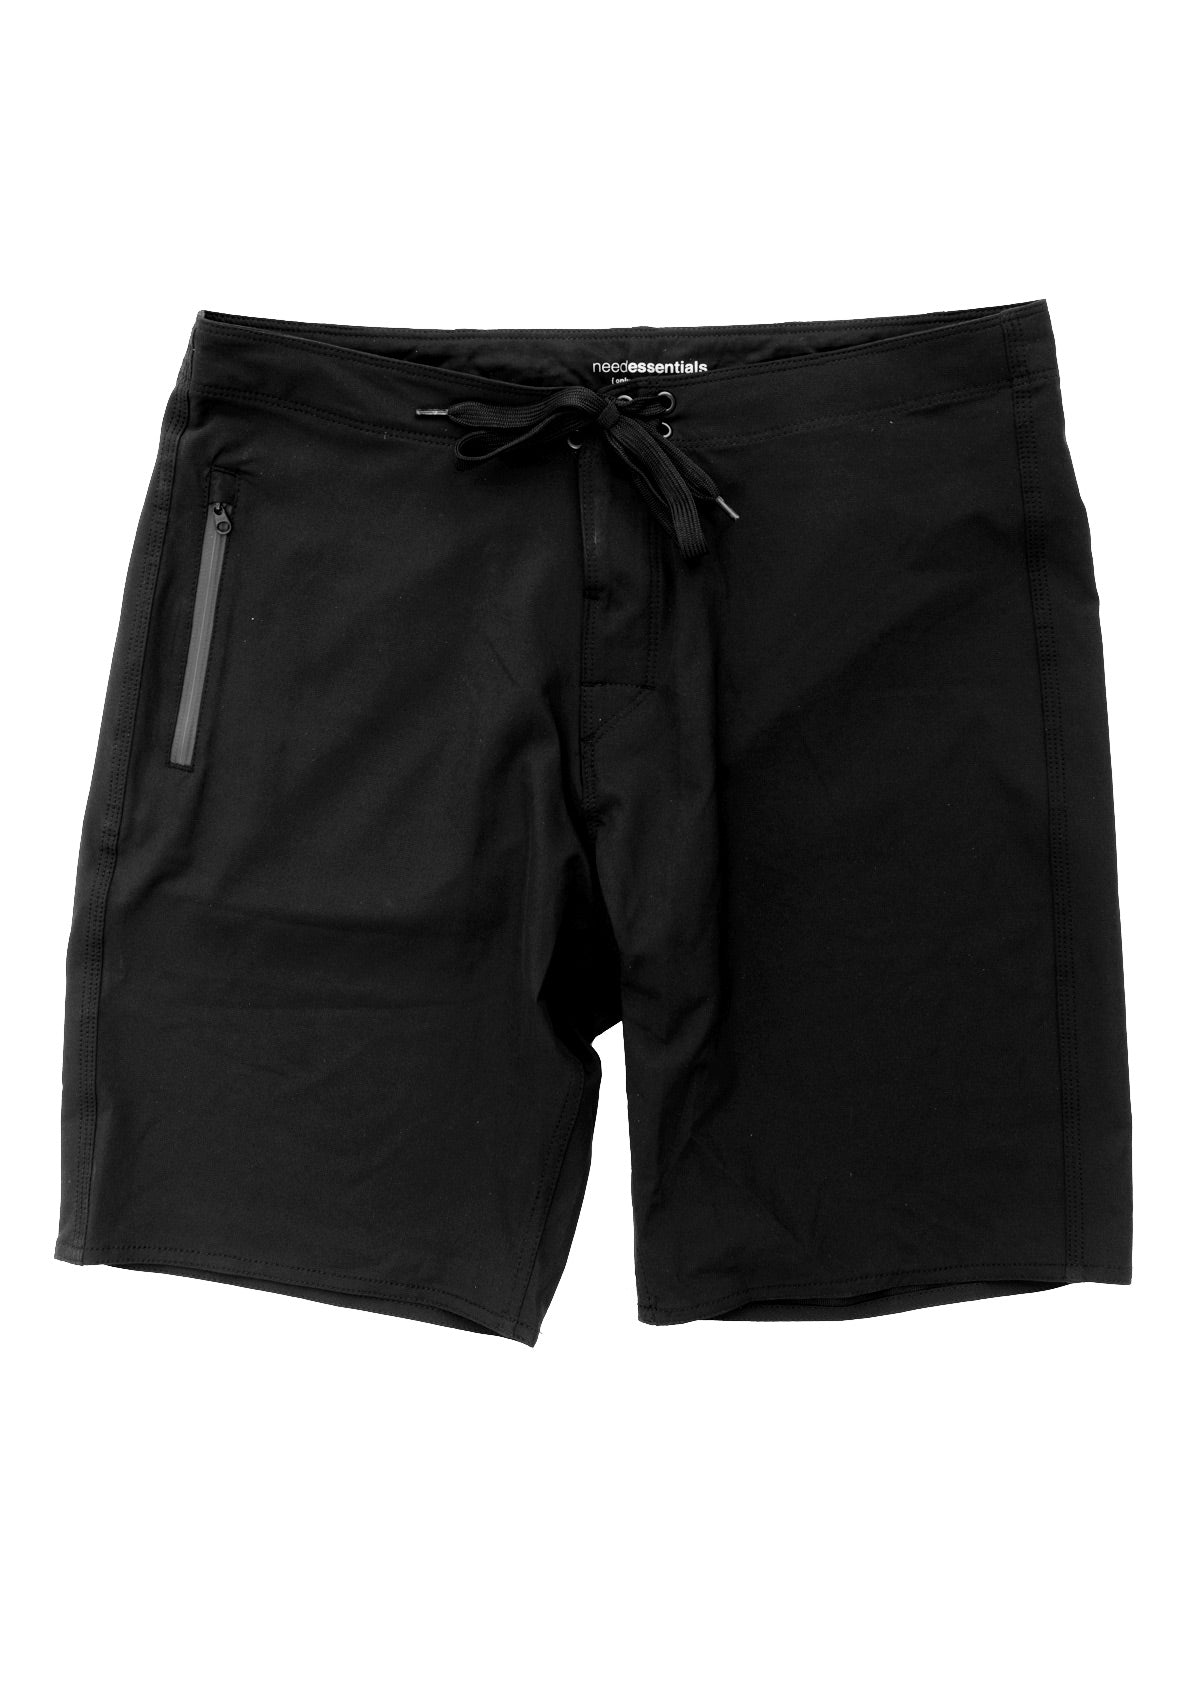 needessentials light weight mens surfing boardshorts non branded black